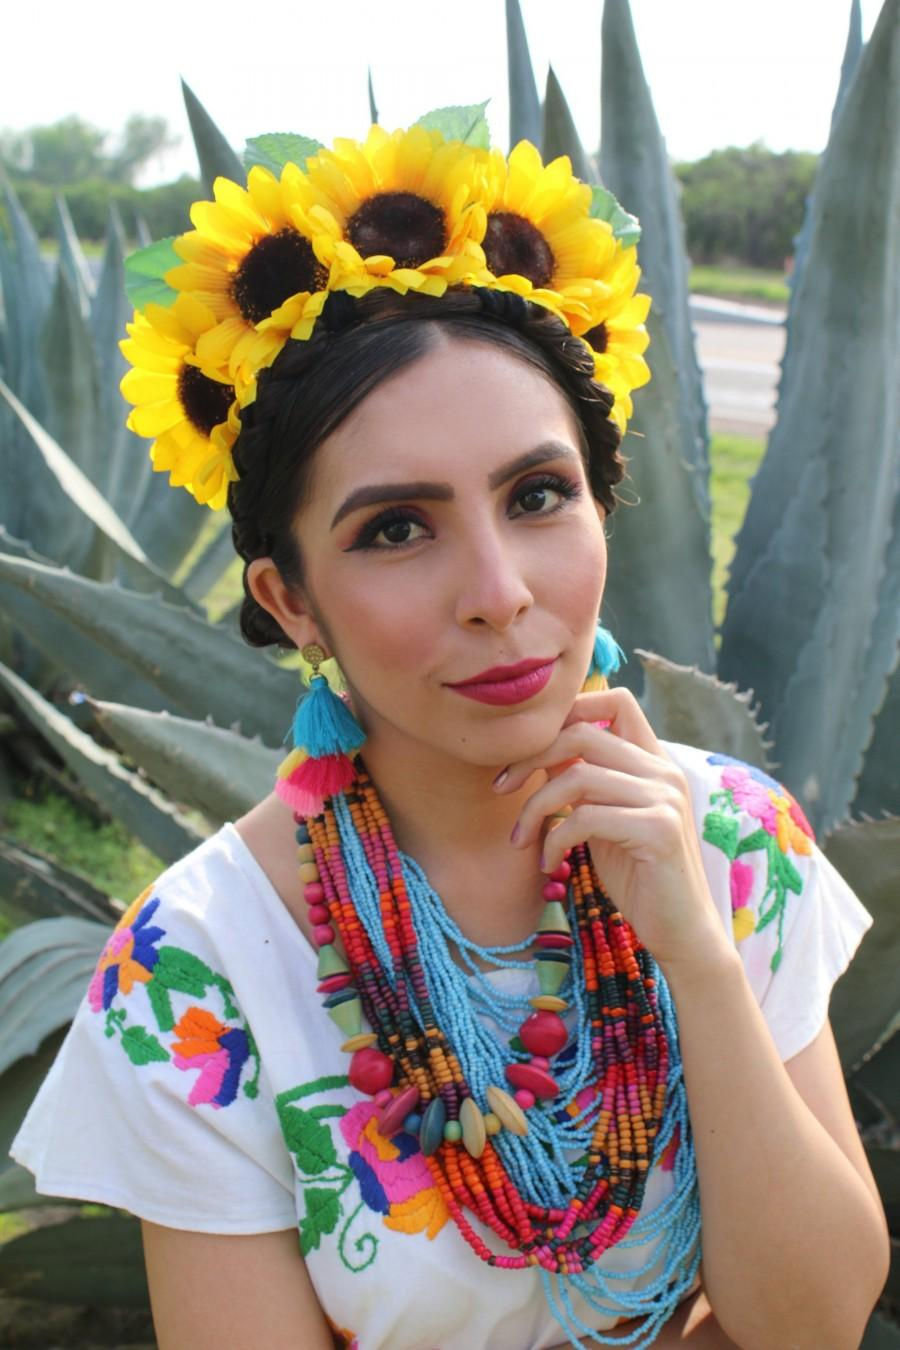 Свадьба - Yellow Sunflowers Flower Crown (Headband Headpiece Wreath Day of the Dead Costume Boho Wedding Bohemian Hippie Bridesmaids Frida)